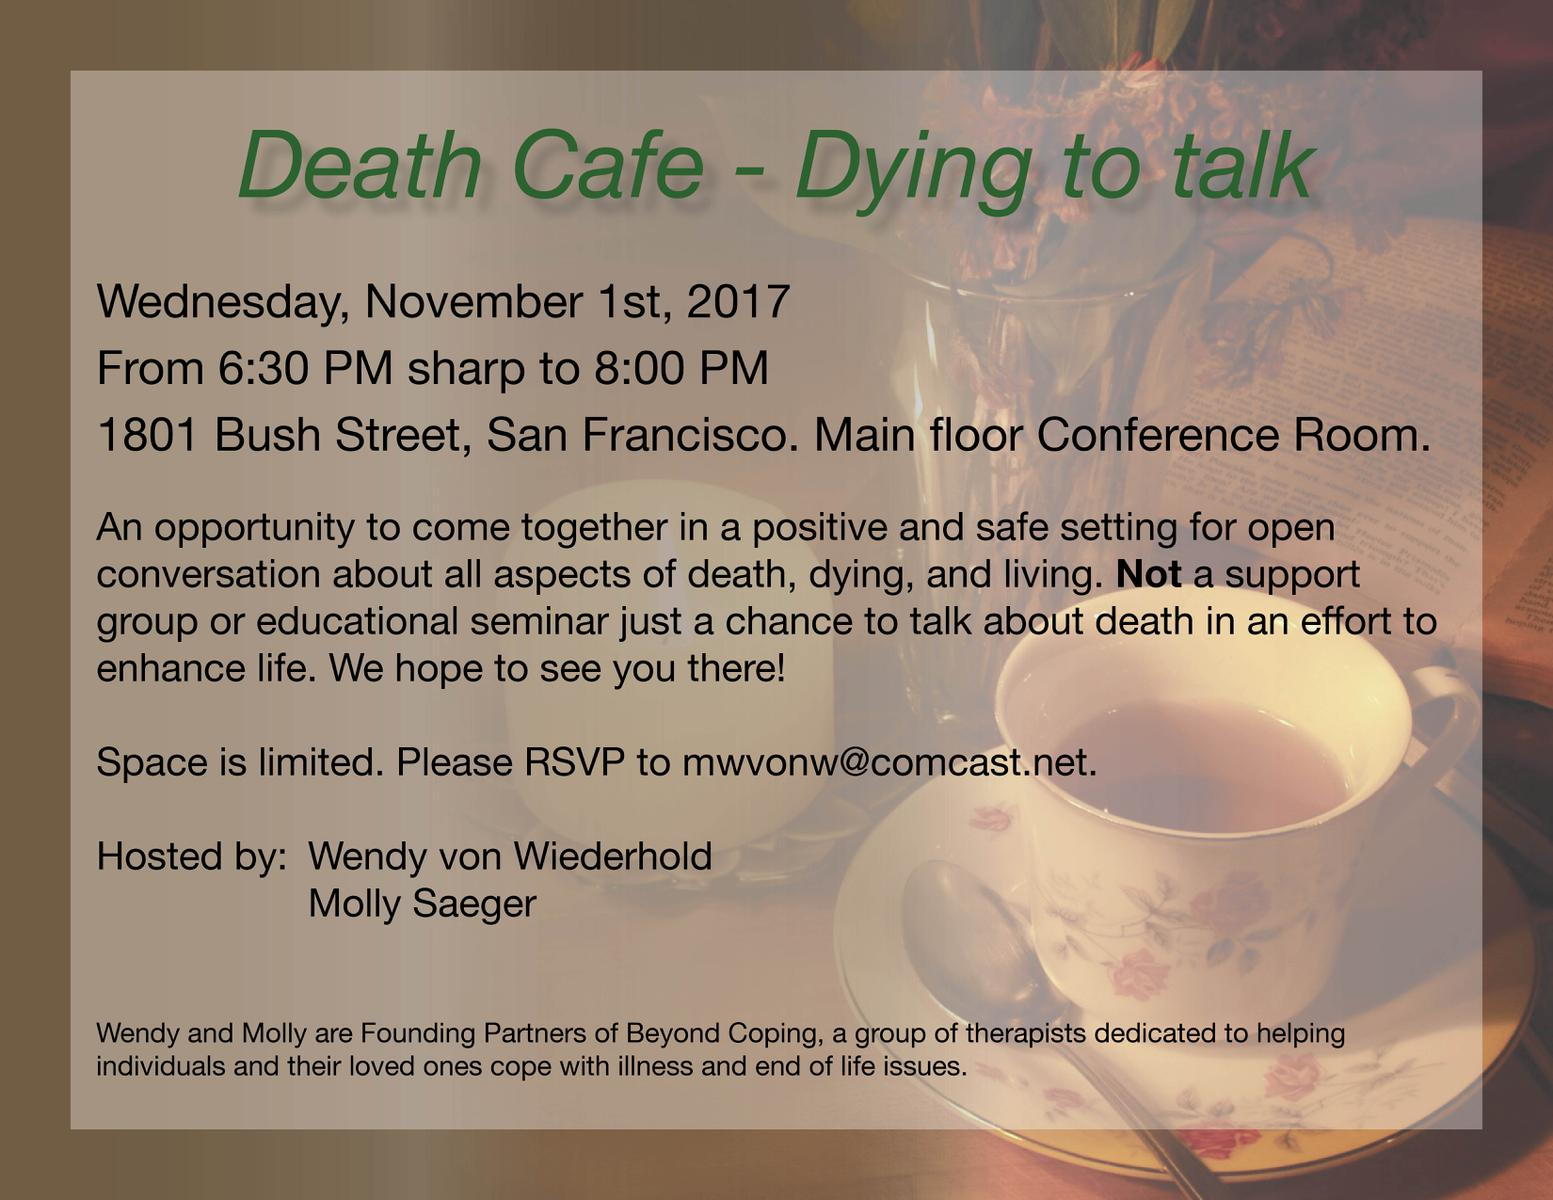 Death Cafe - Dying to talk